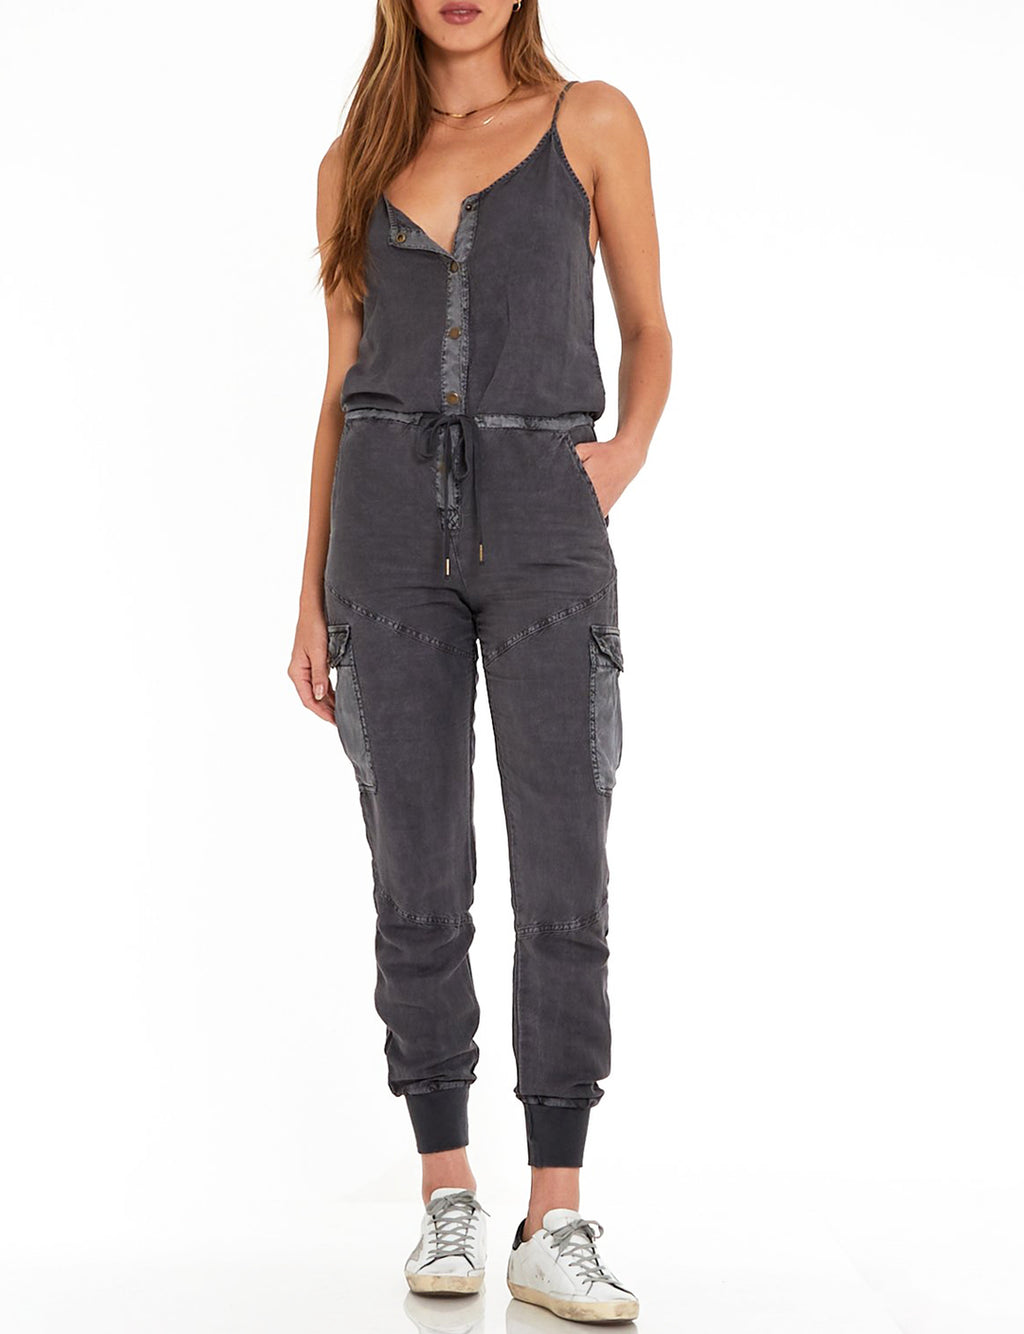 YFB Kaia Jumpsuit in Black Sand Pigment